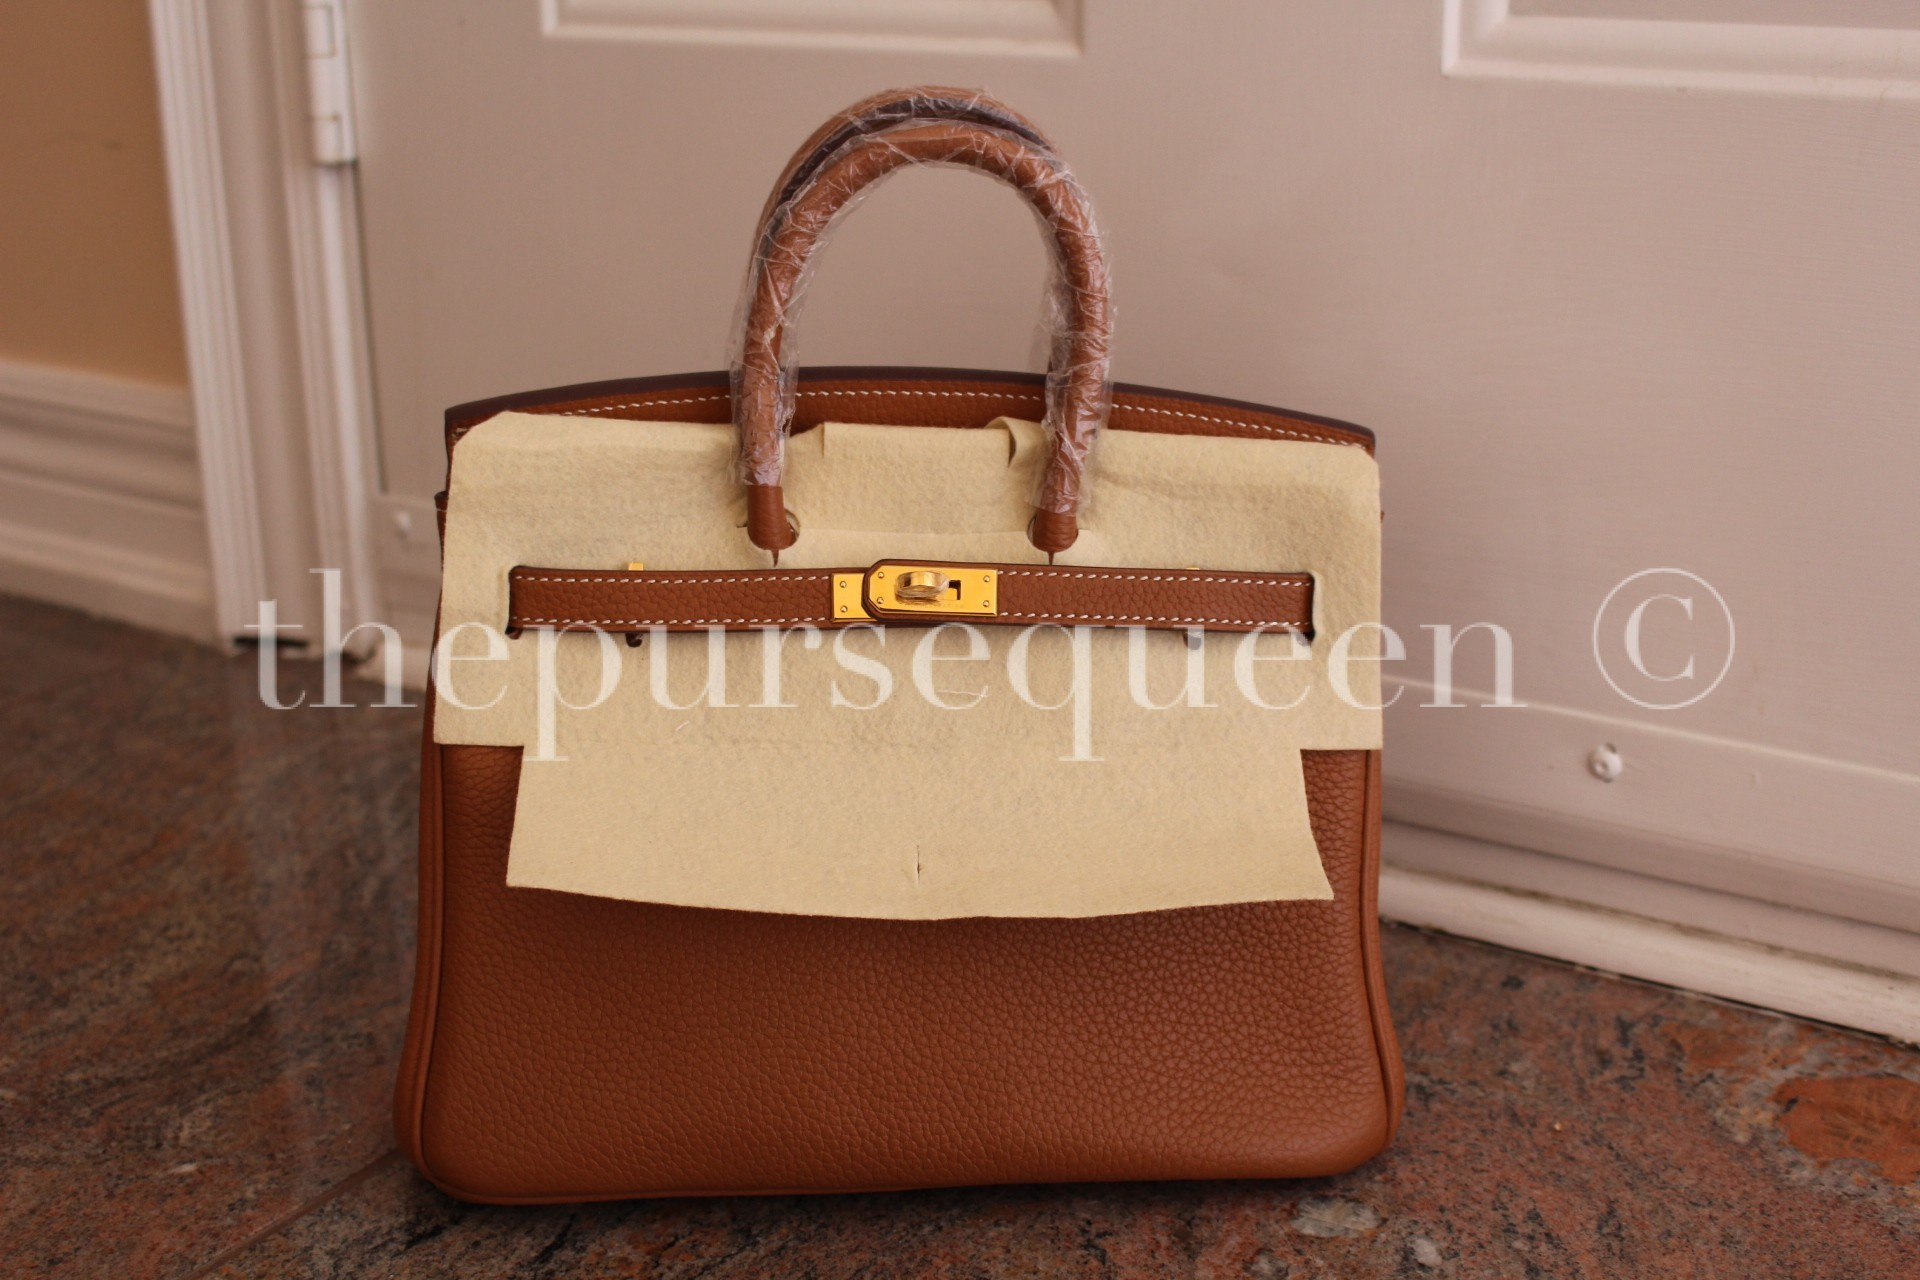 48a05ffff82 Perfect Hermes Birkin Replica Review - Authentic   Replica Handbag Reviews  by The Purse Queen